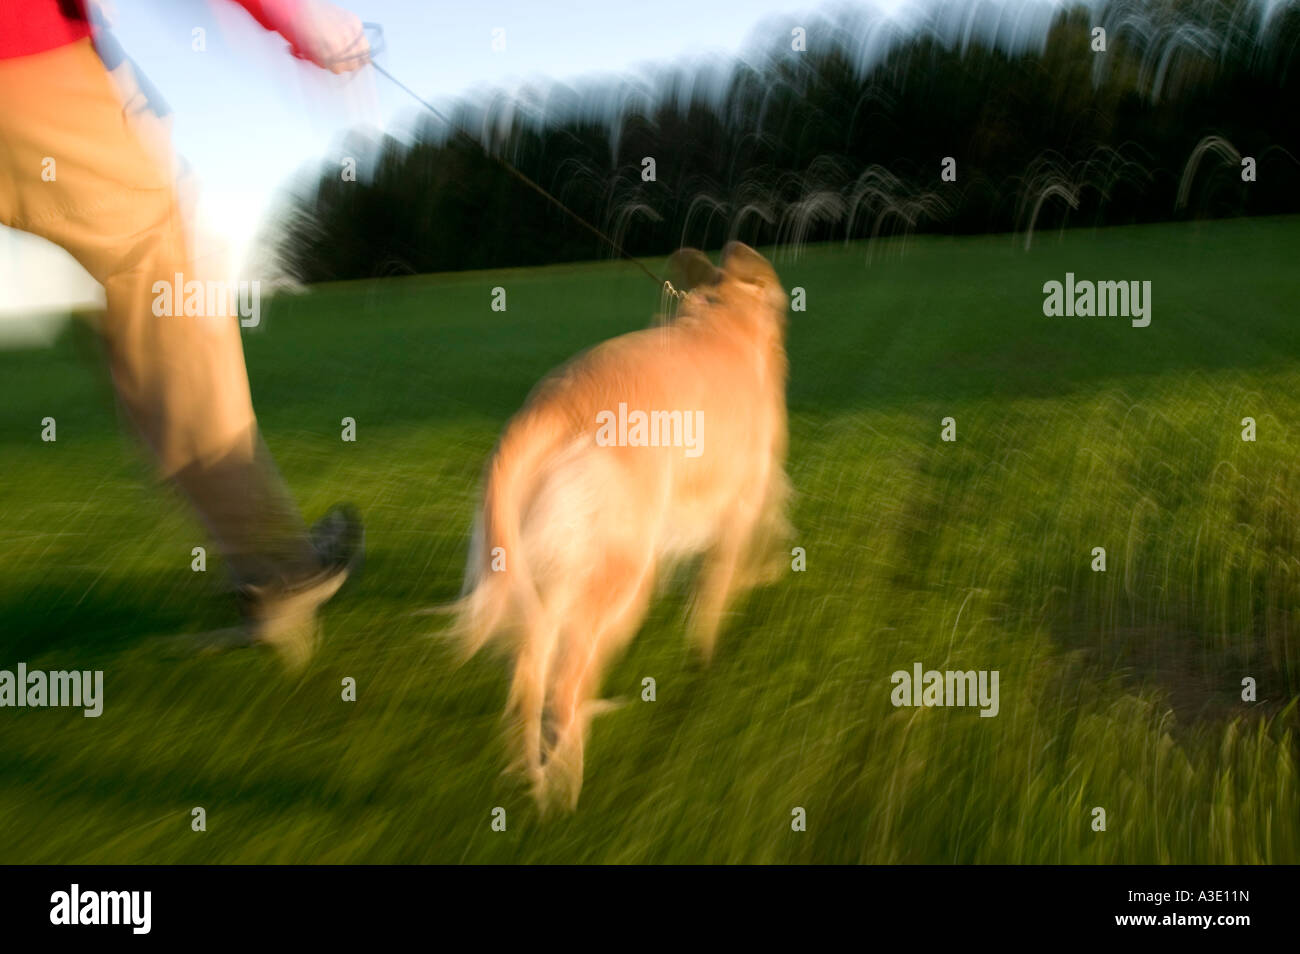 Teenage boy running with his Golden Retriever dog in the green grassy fields of a park. - Stock Image